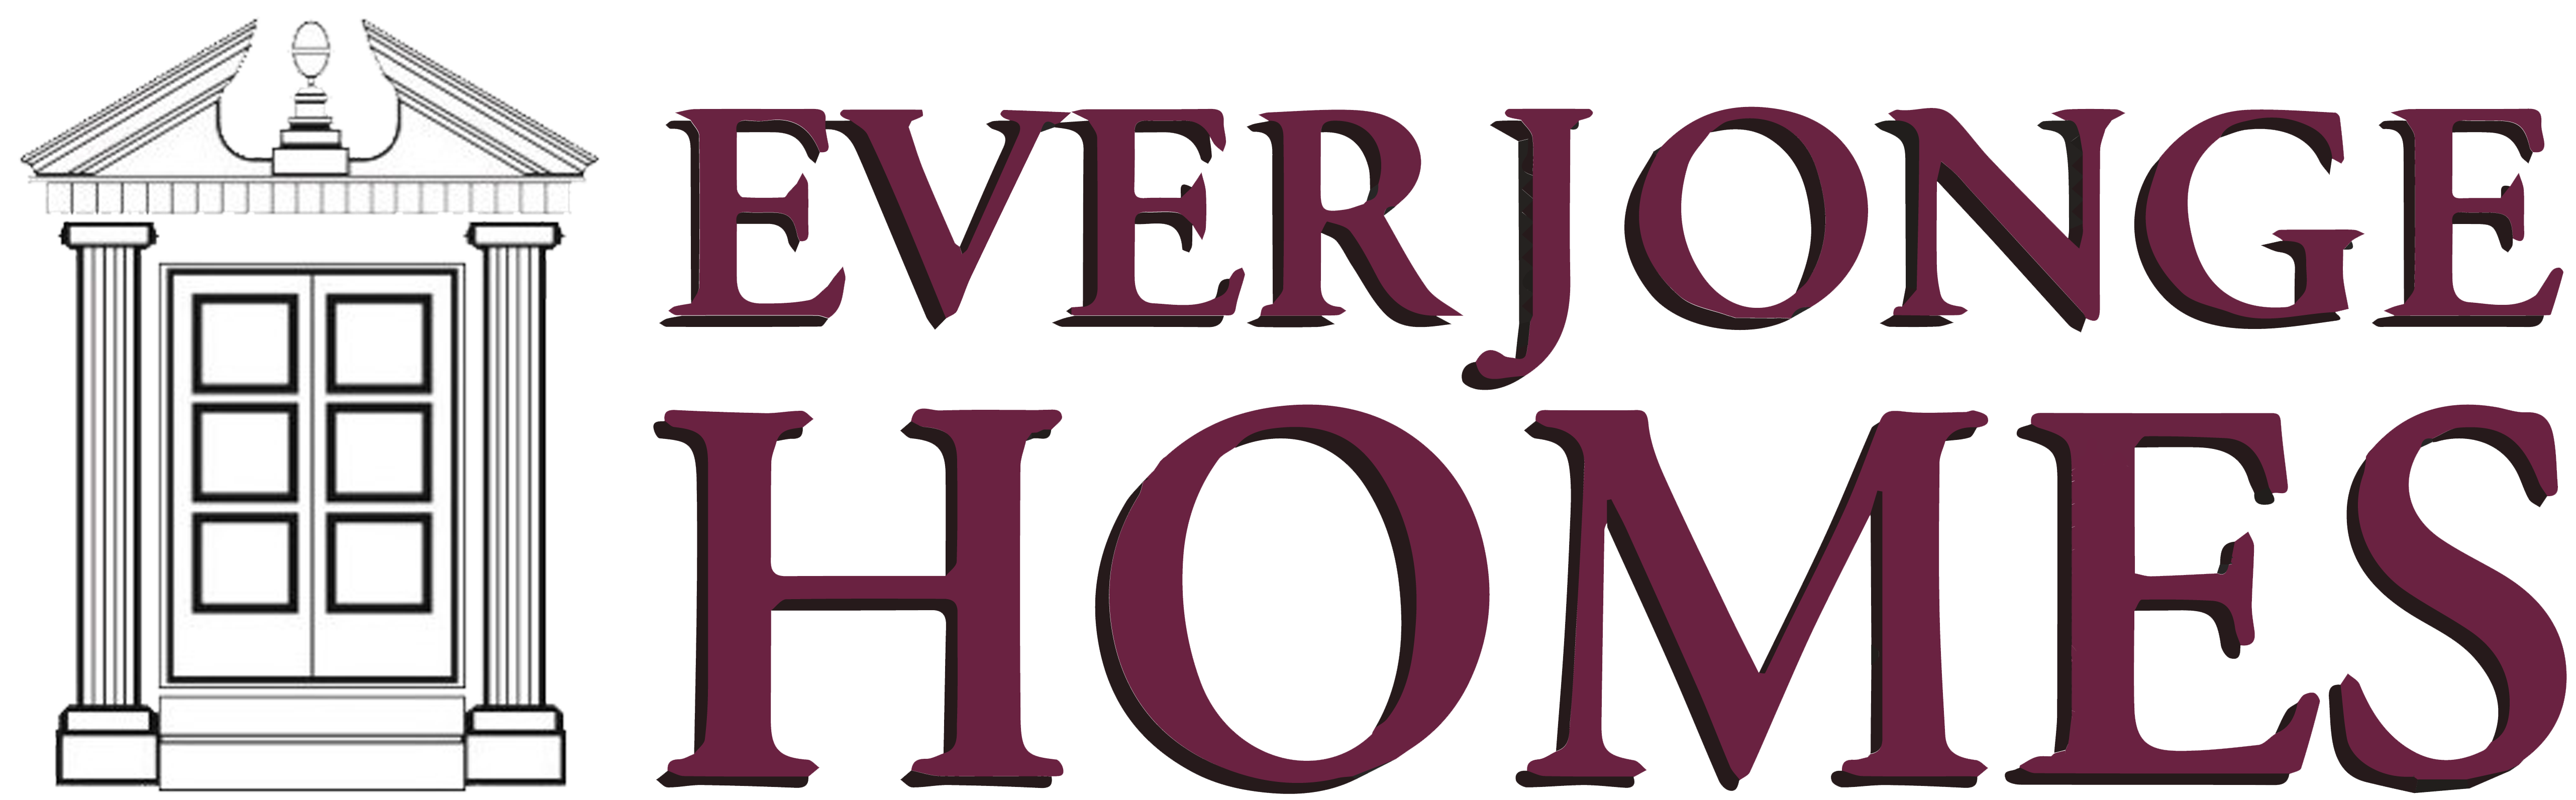 Everjonge Homes